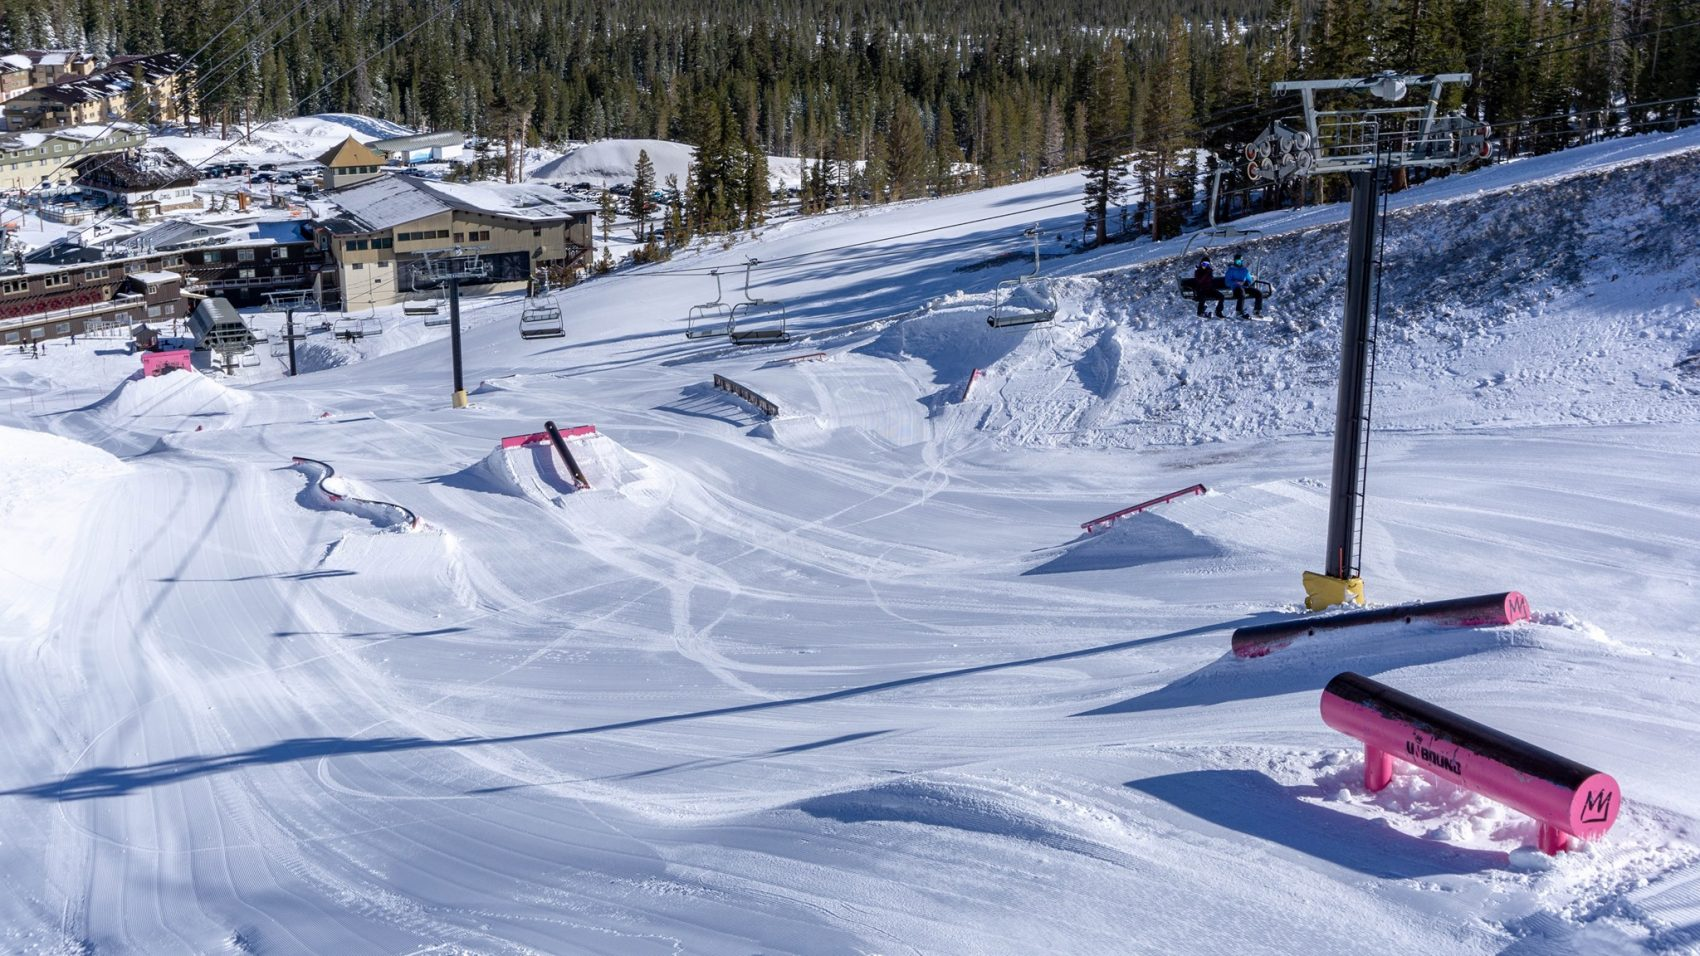 Top 13 U.S. Park Resorts: Opinion From A Freestyle Skier - SnowBrains